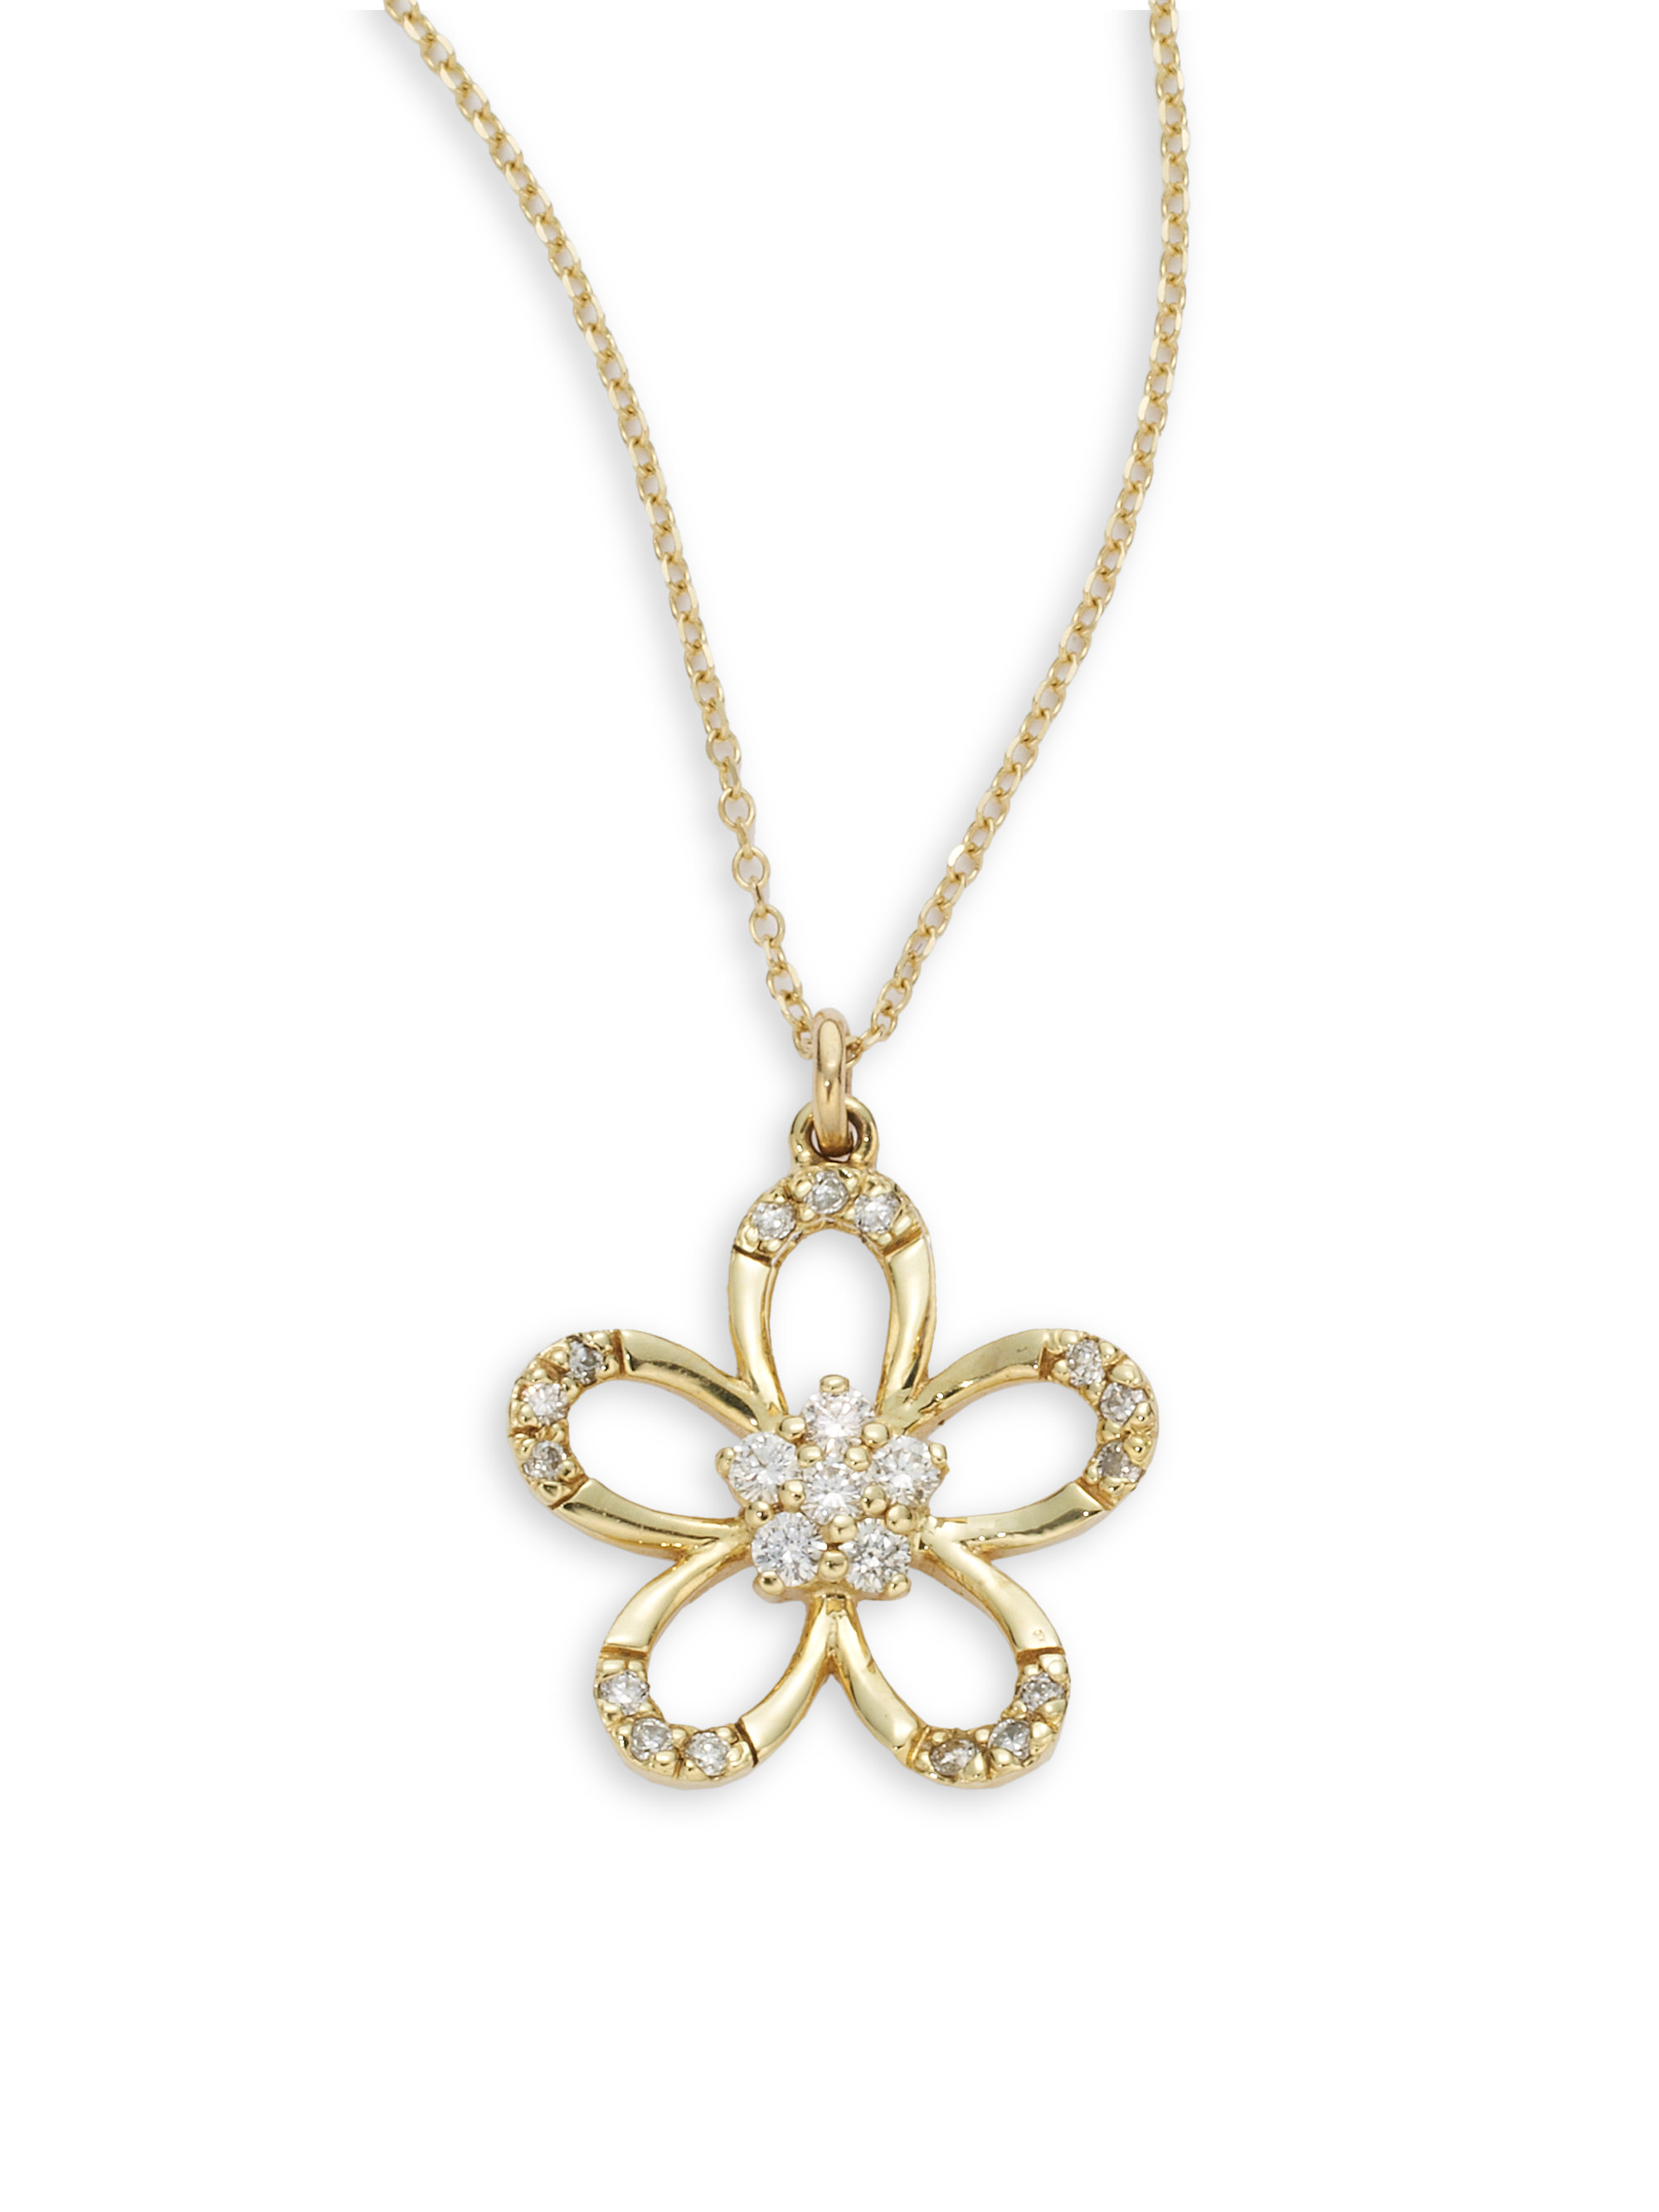 flower eshop ba en p bc b bd necklaces index af tourmaline necklace ce ac cf gold g bf detail pendant bb